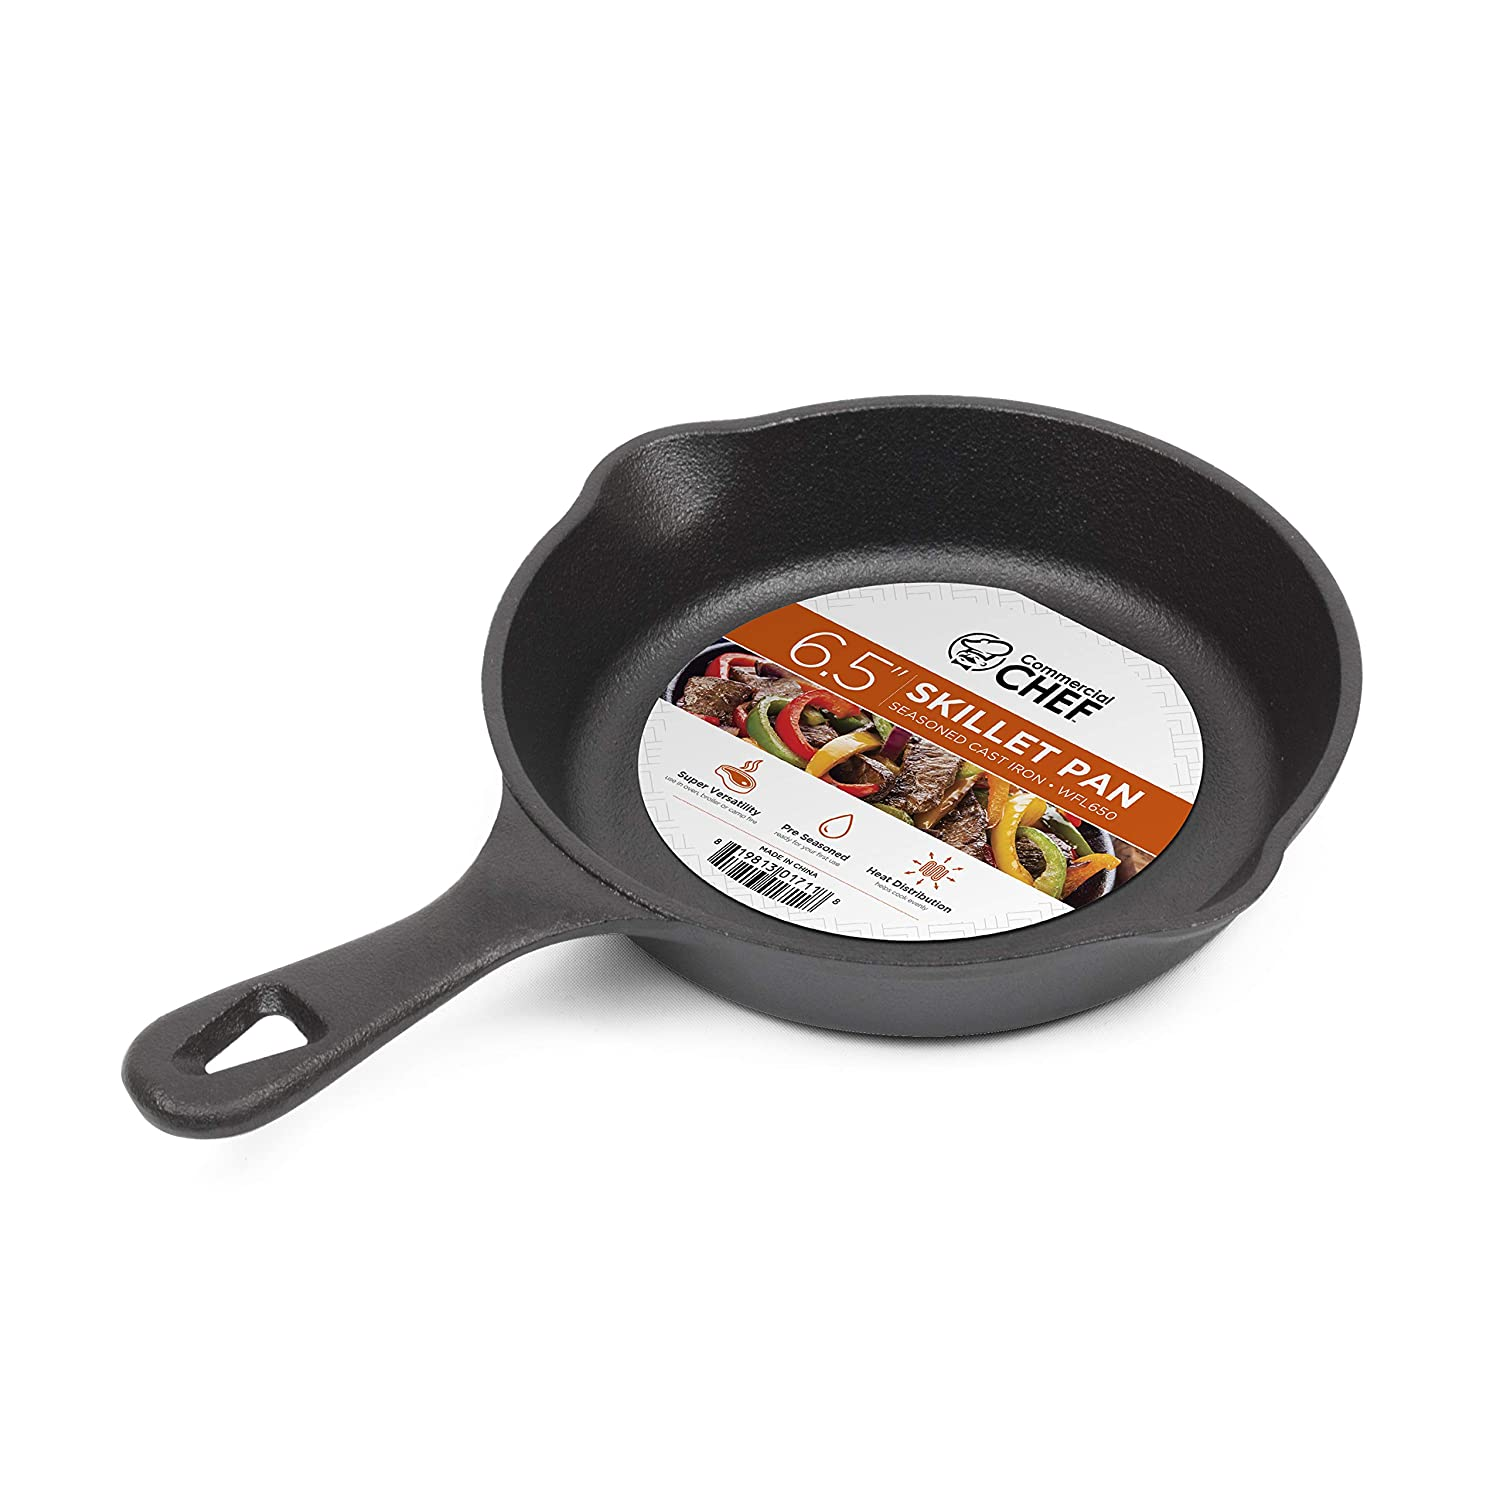 "Commercial Chef CHFL650 6.5"" Skillet, Inches, Black"